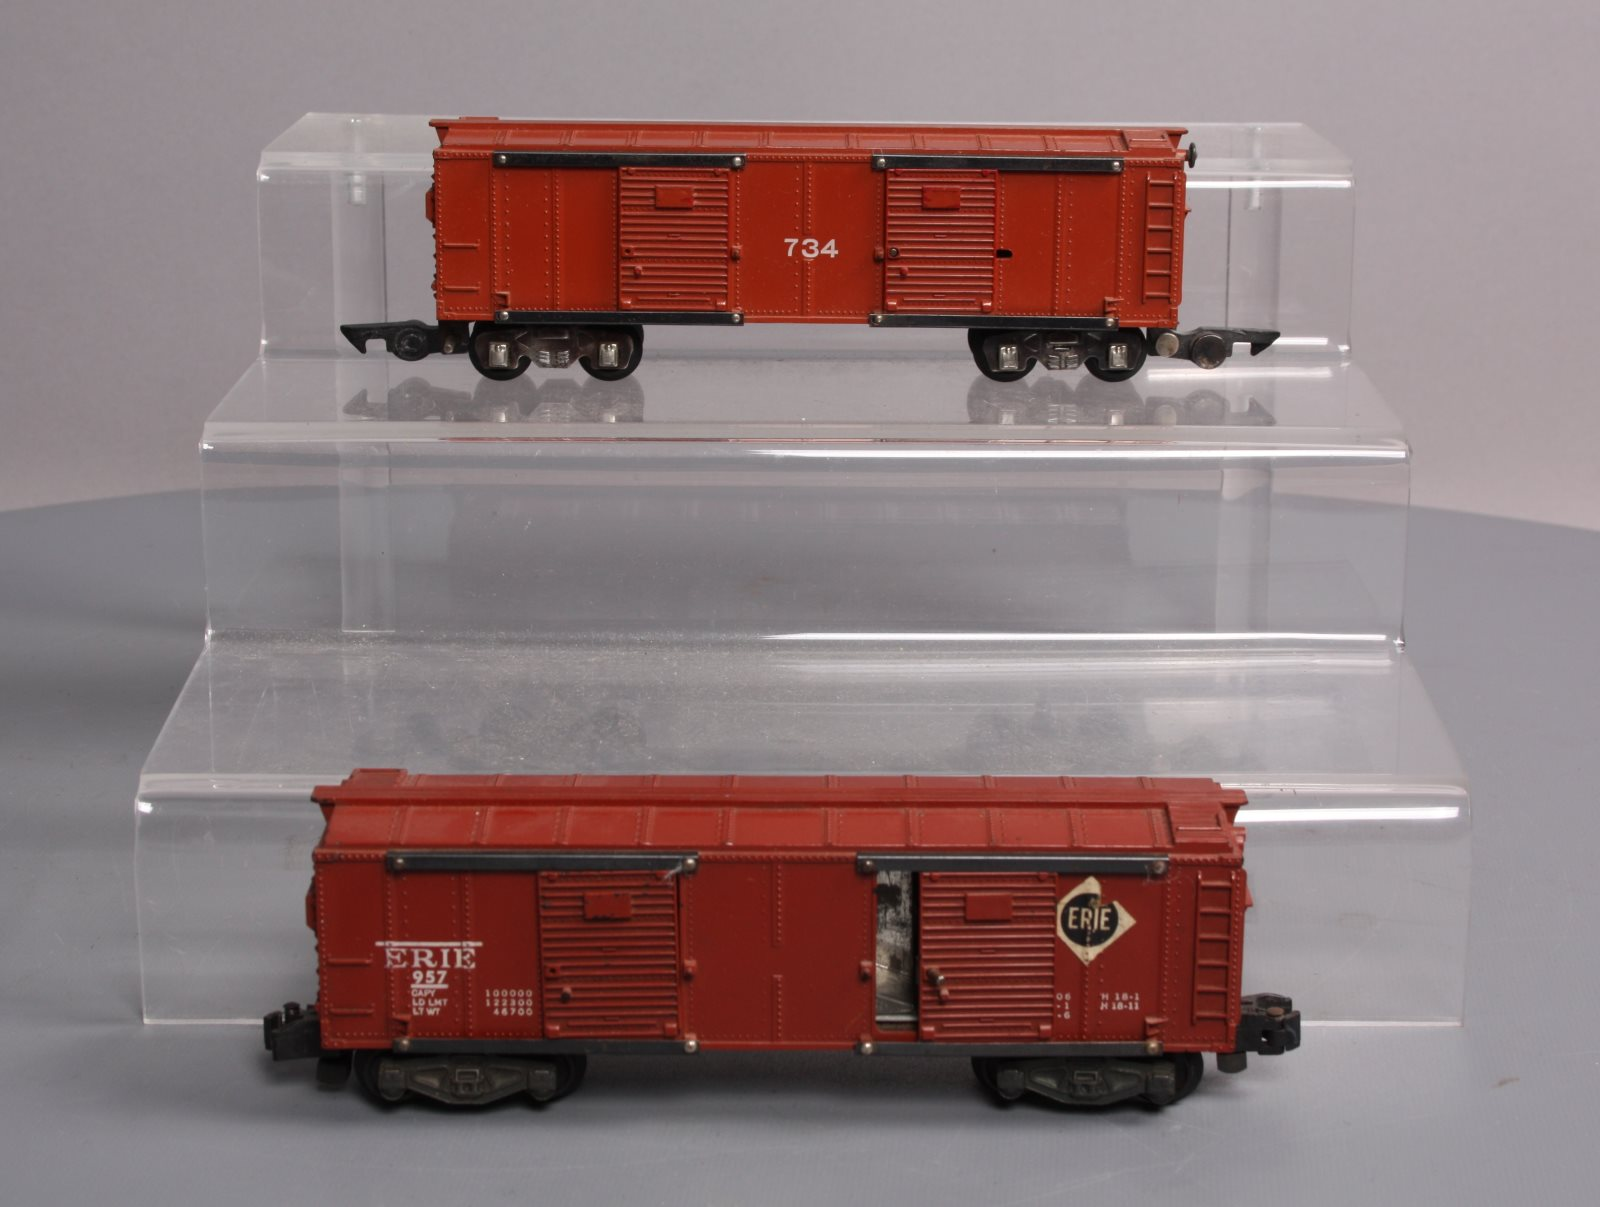 Buy American Flyer 734 Operating Boxcar & 957 Erie Operating Boxcar